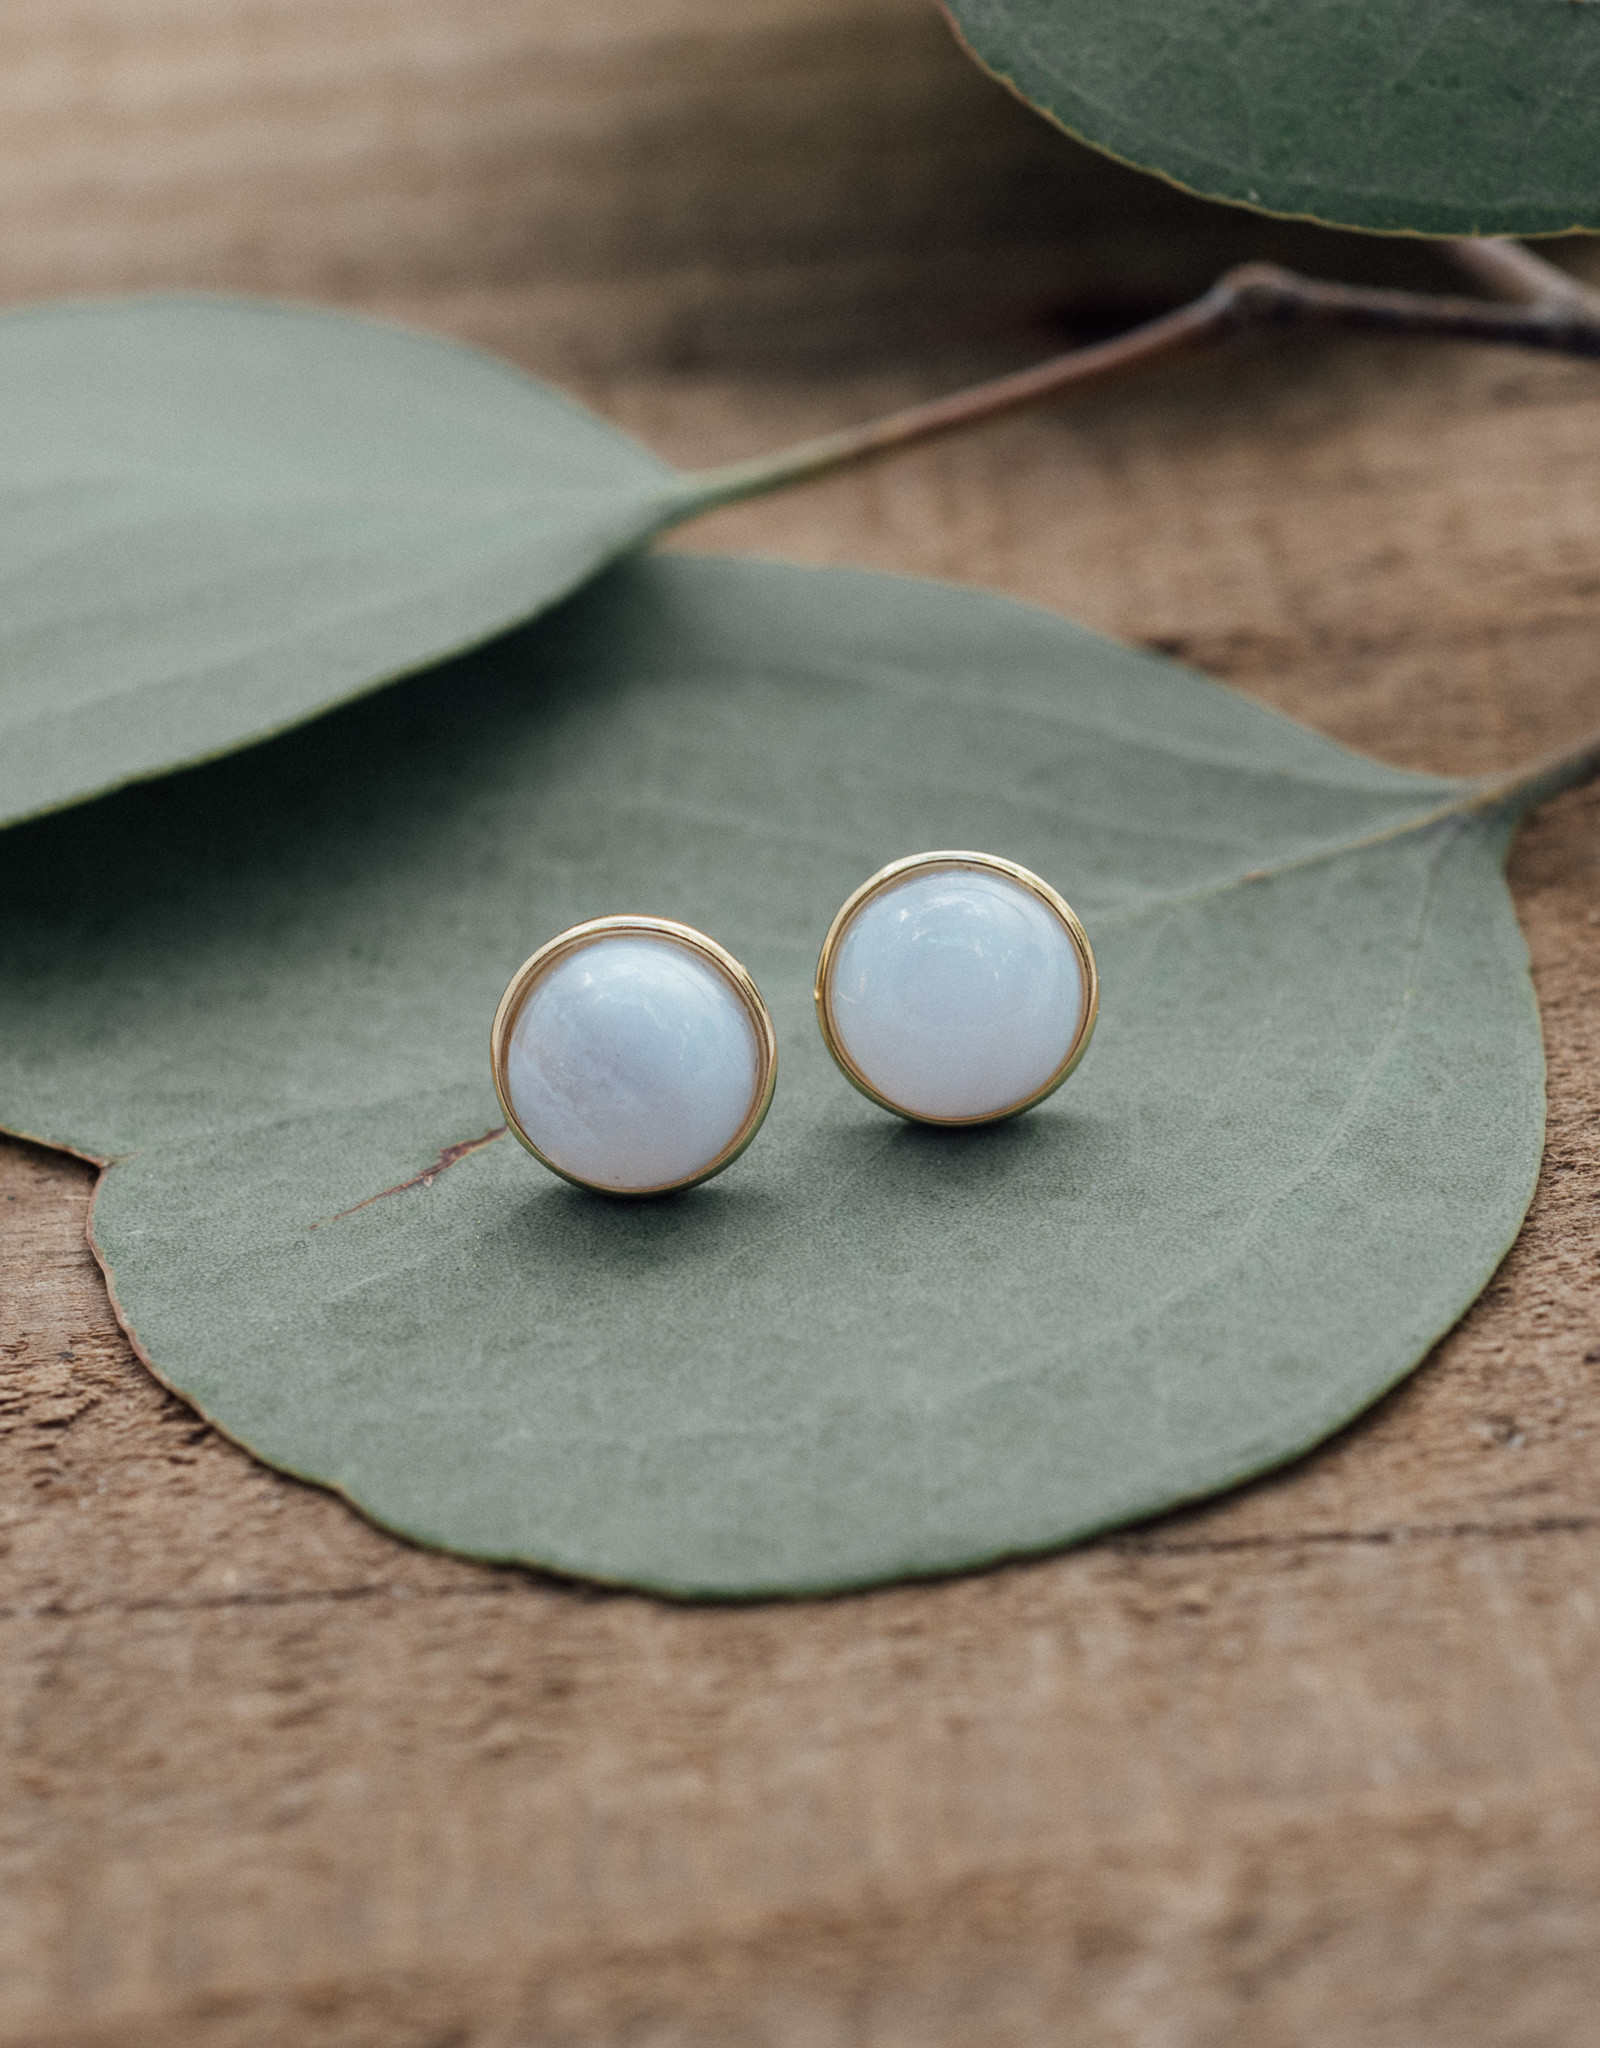 Boucles d'oreilles Anytime agate bleue or